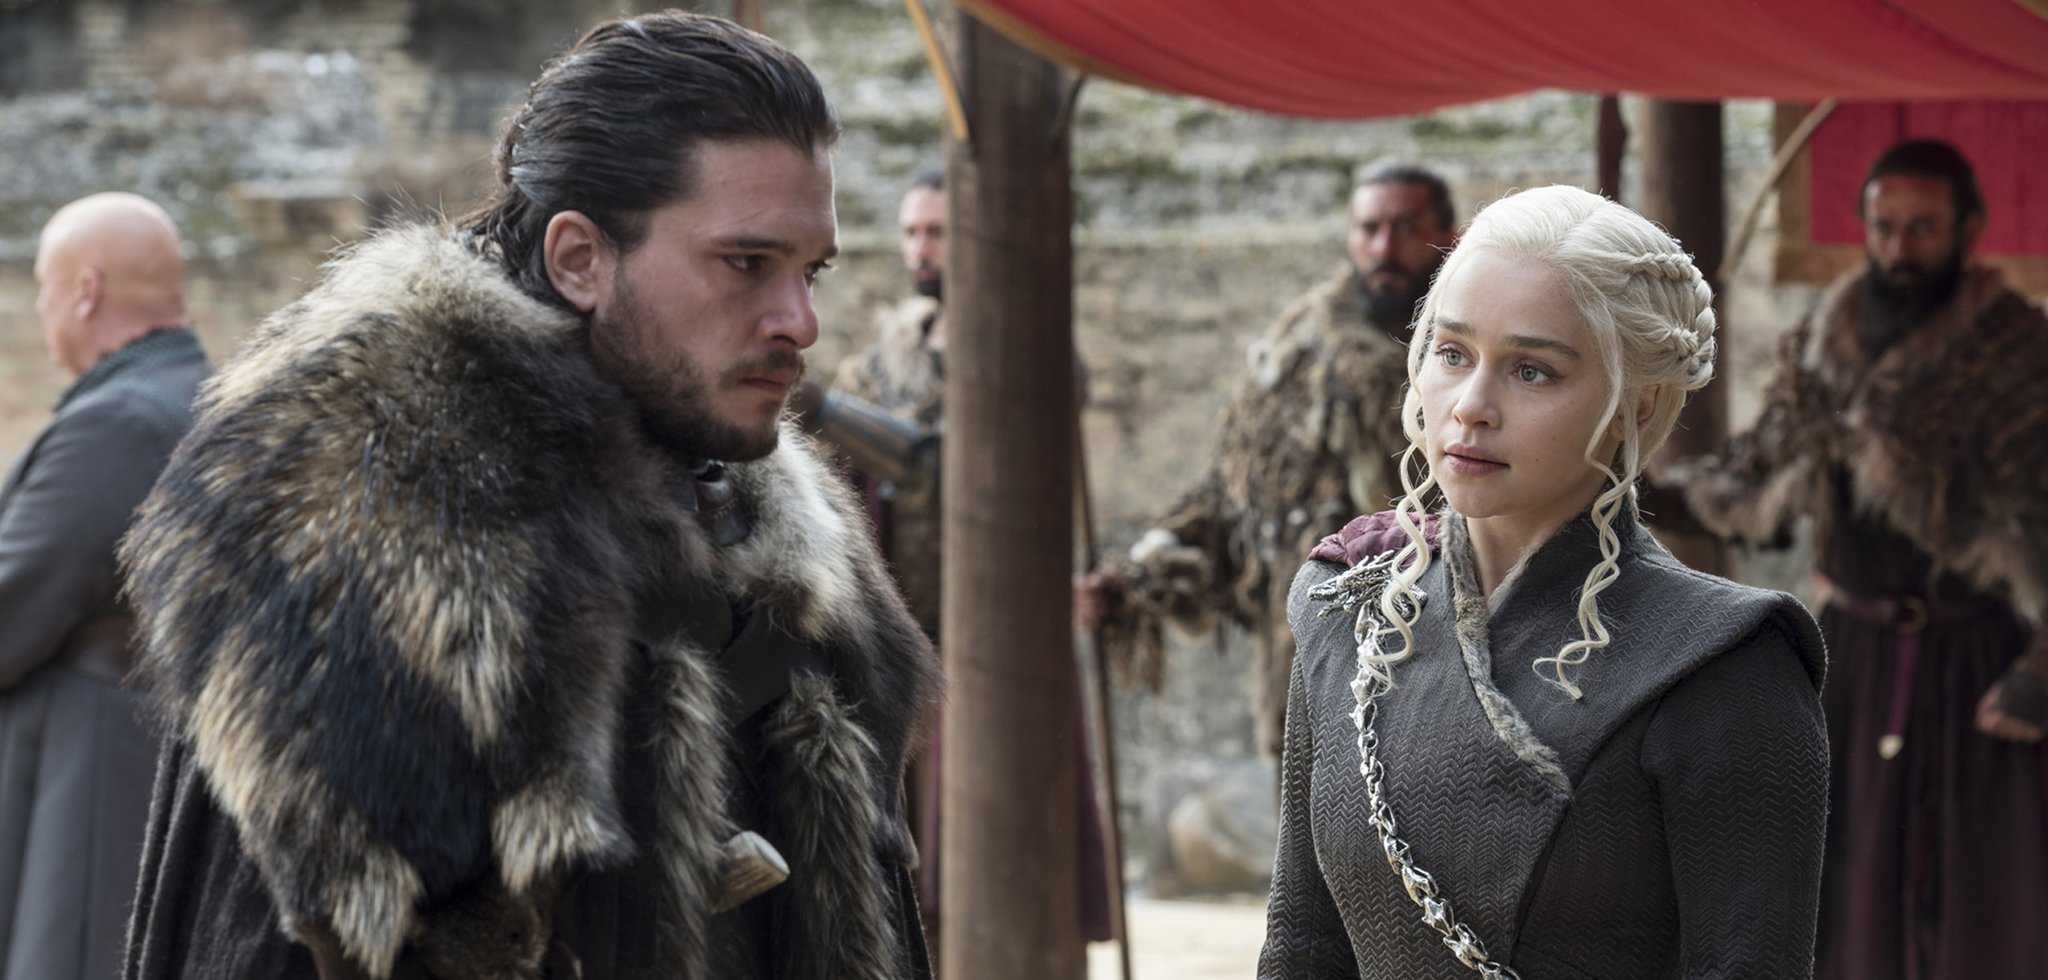 The Game of Thrones Movie Trilogy You'll Never Get to See